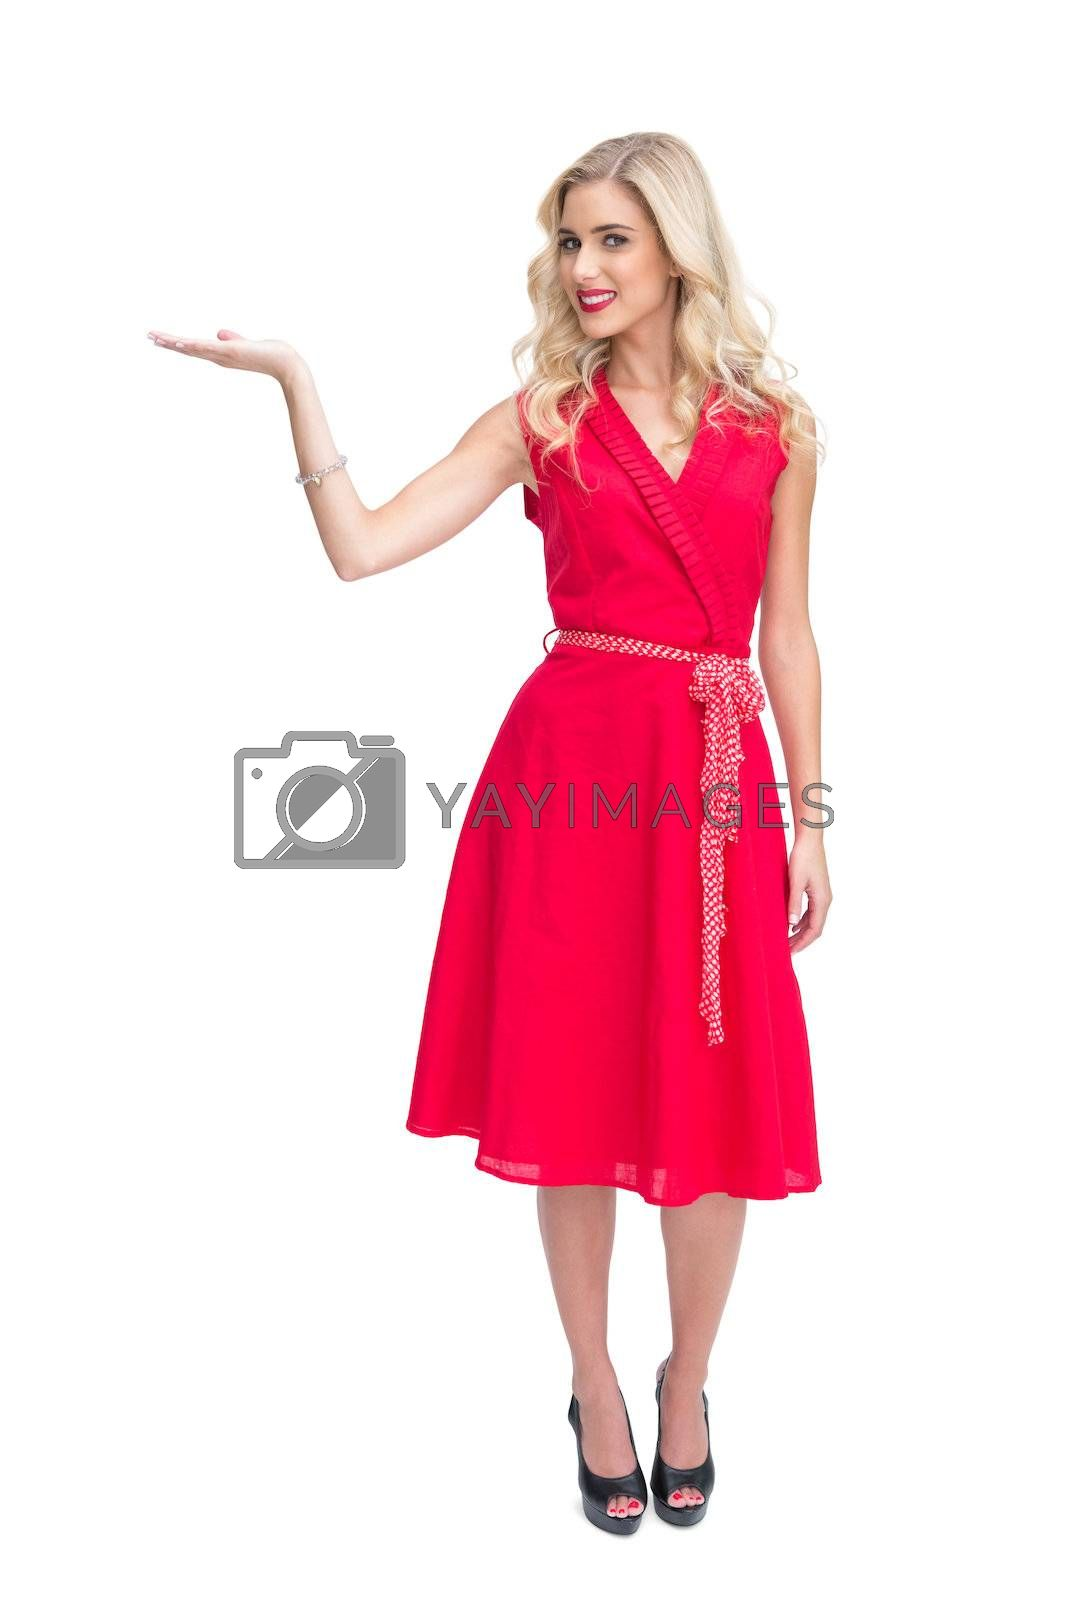 Cheerful woman in red dress presenting something in her hand by Wavebreakmedia